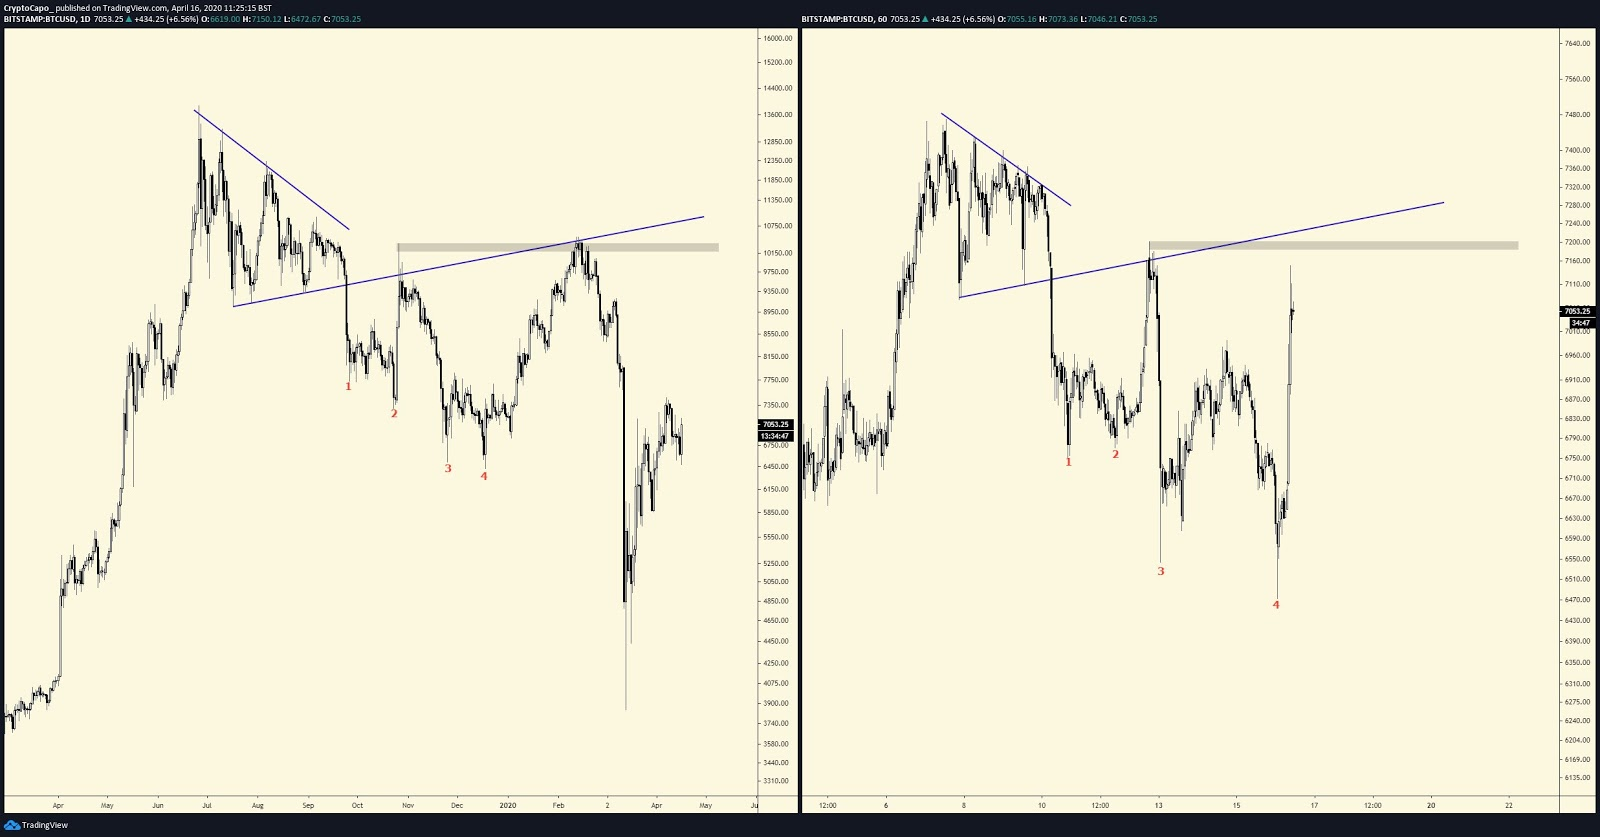 Bitcoin 2019 chart and recent 1-hour chart comparison